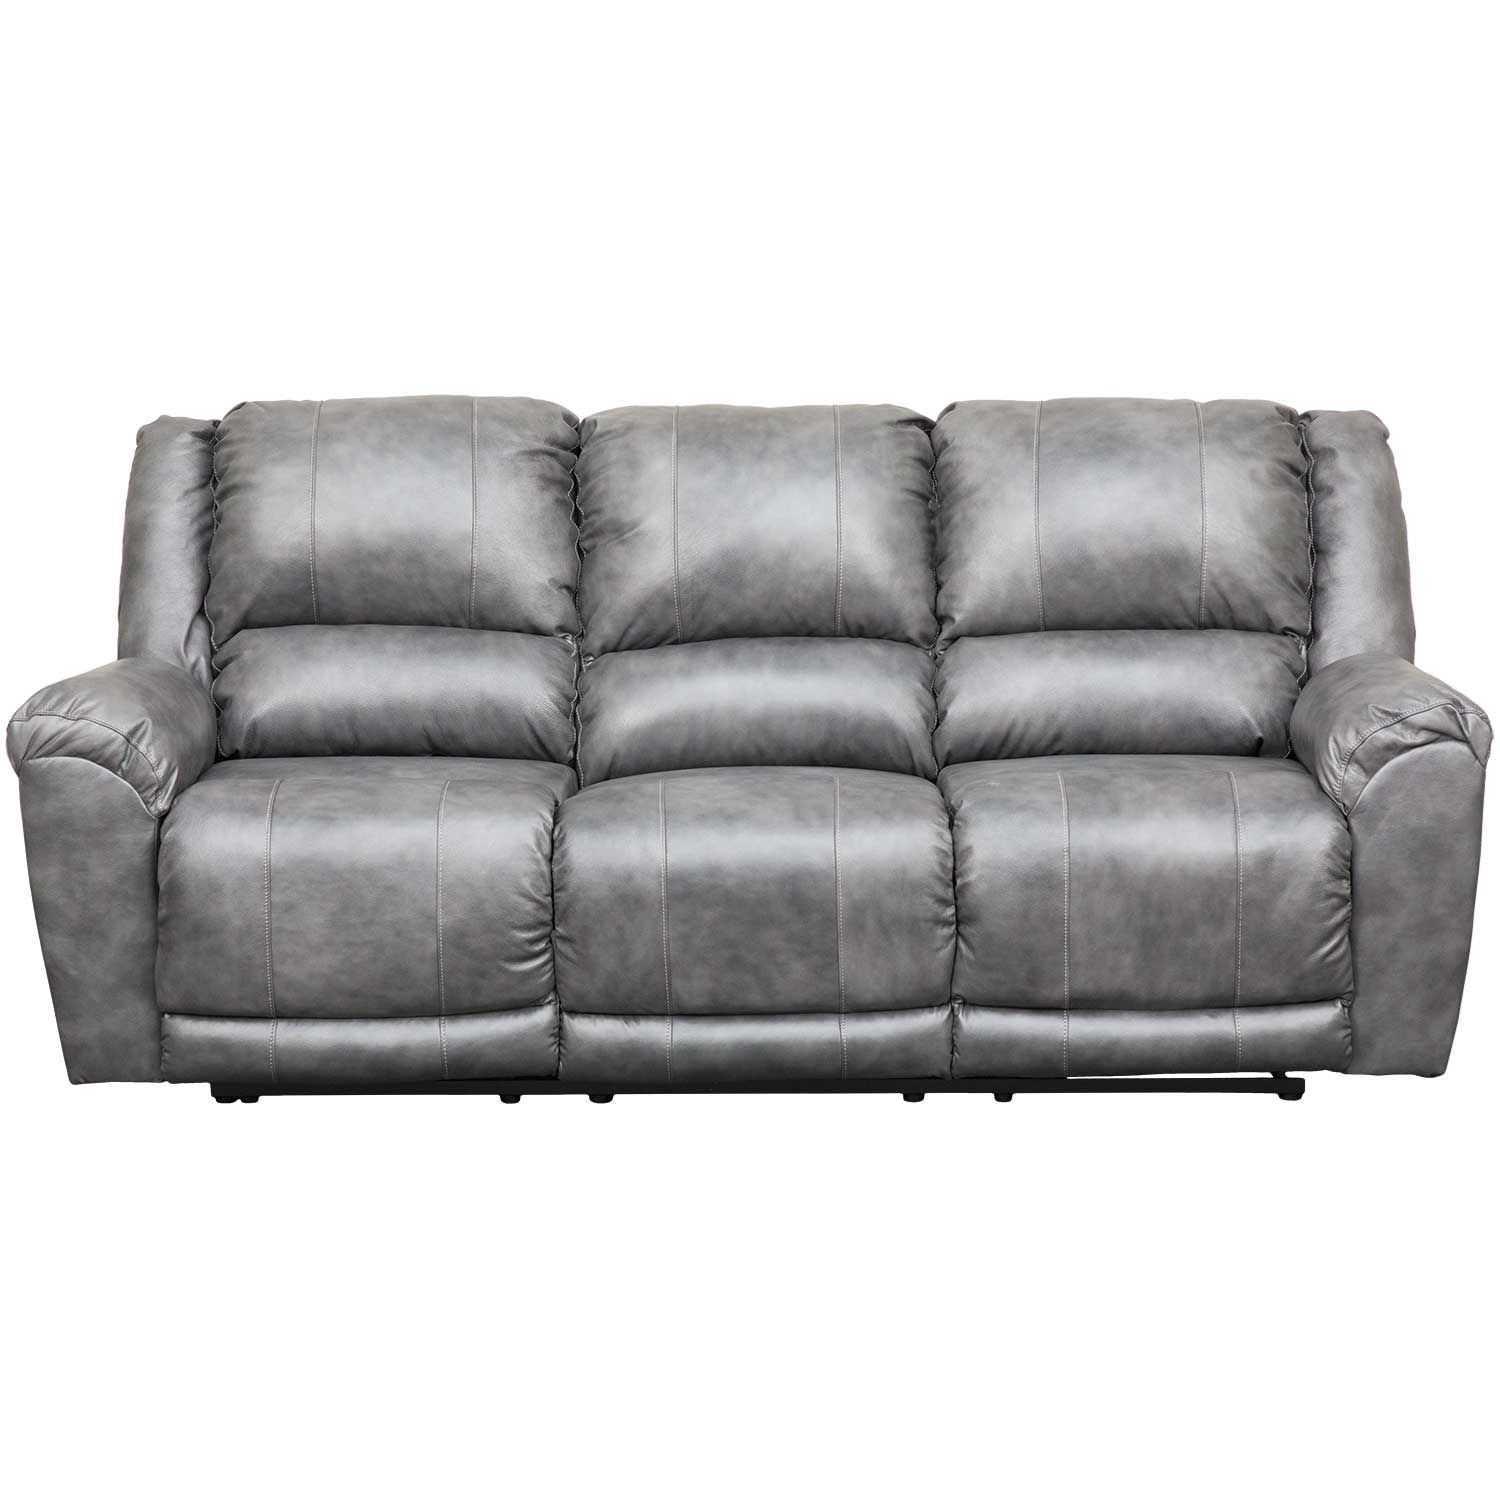 Picture Of Persiphone Charcoal Leather Reclining Sofa